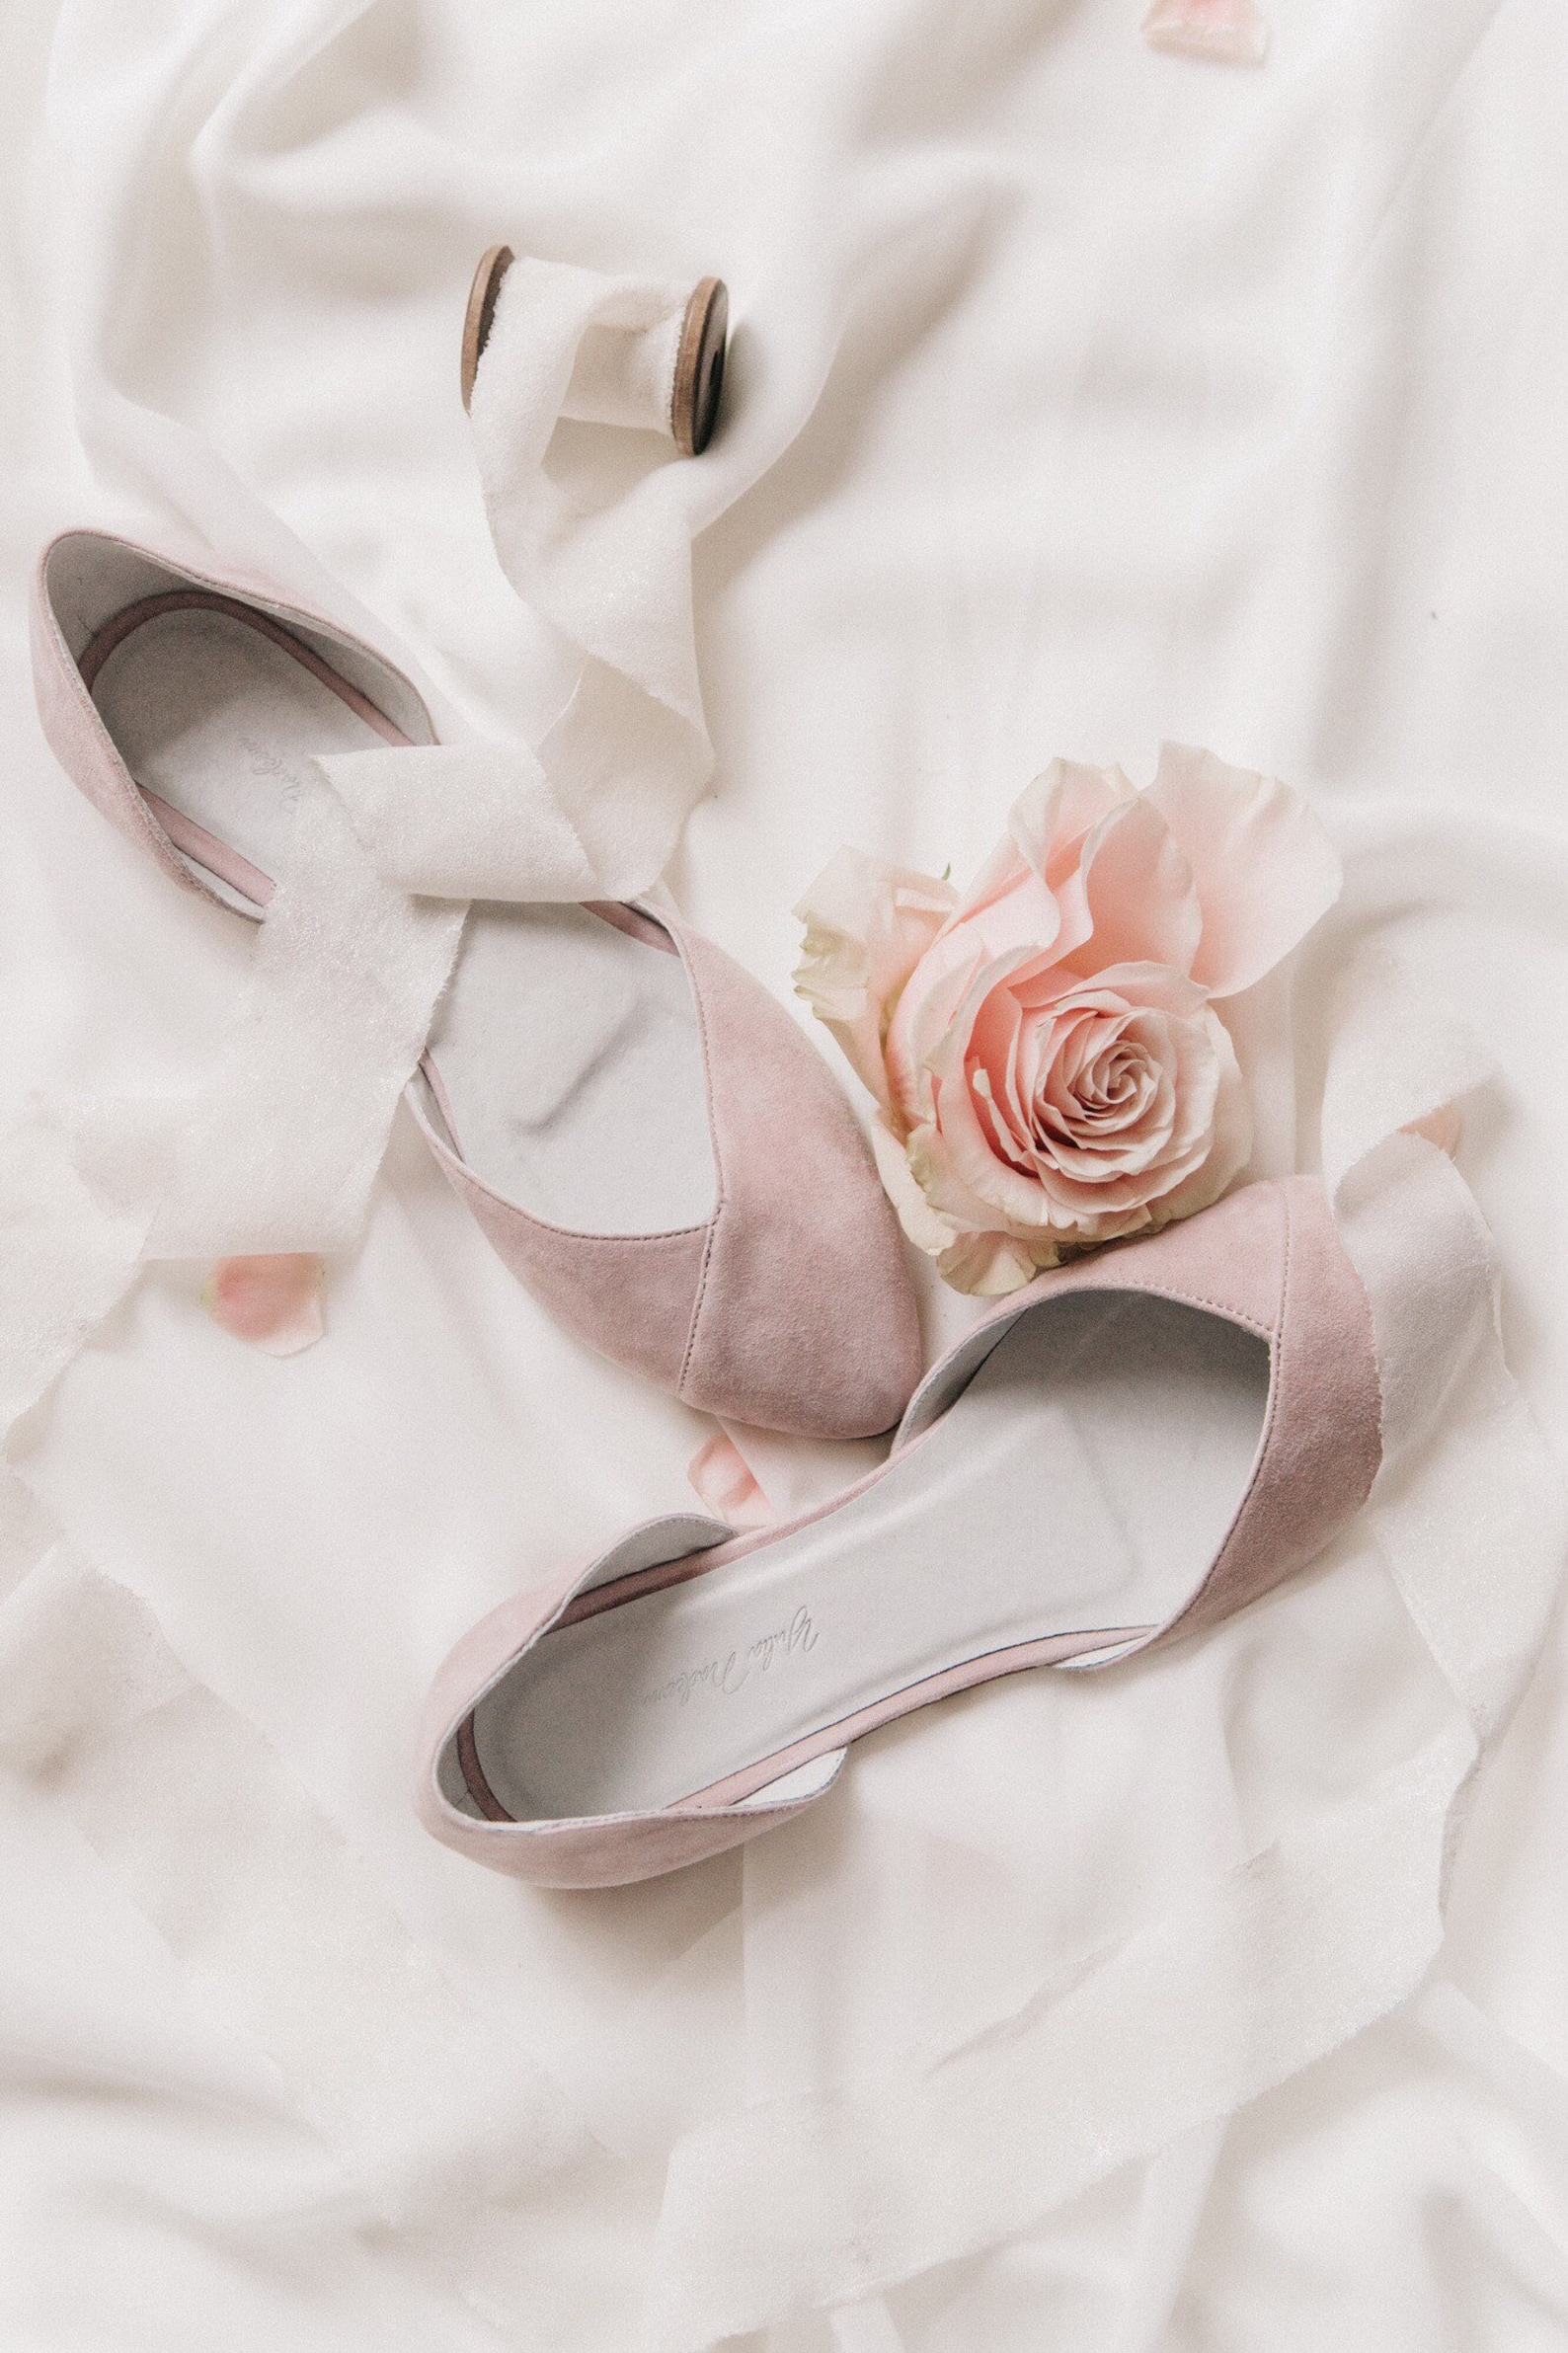 wedding shoes, pink wedding shoes, bridal ballet flats, low wedding shoes, bridal flats, wedding flats, silver flats, ballet fla